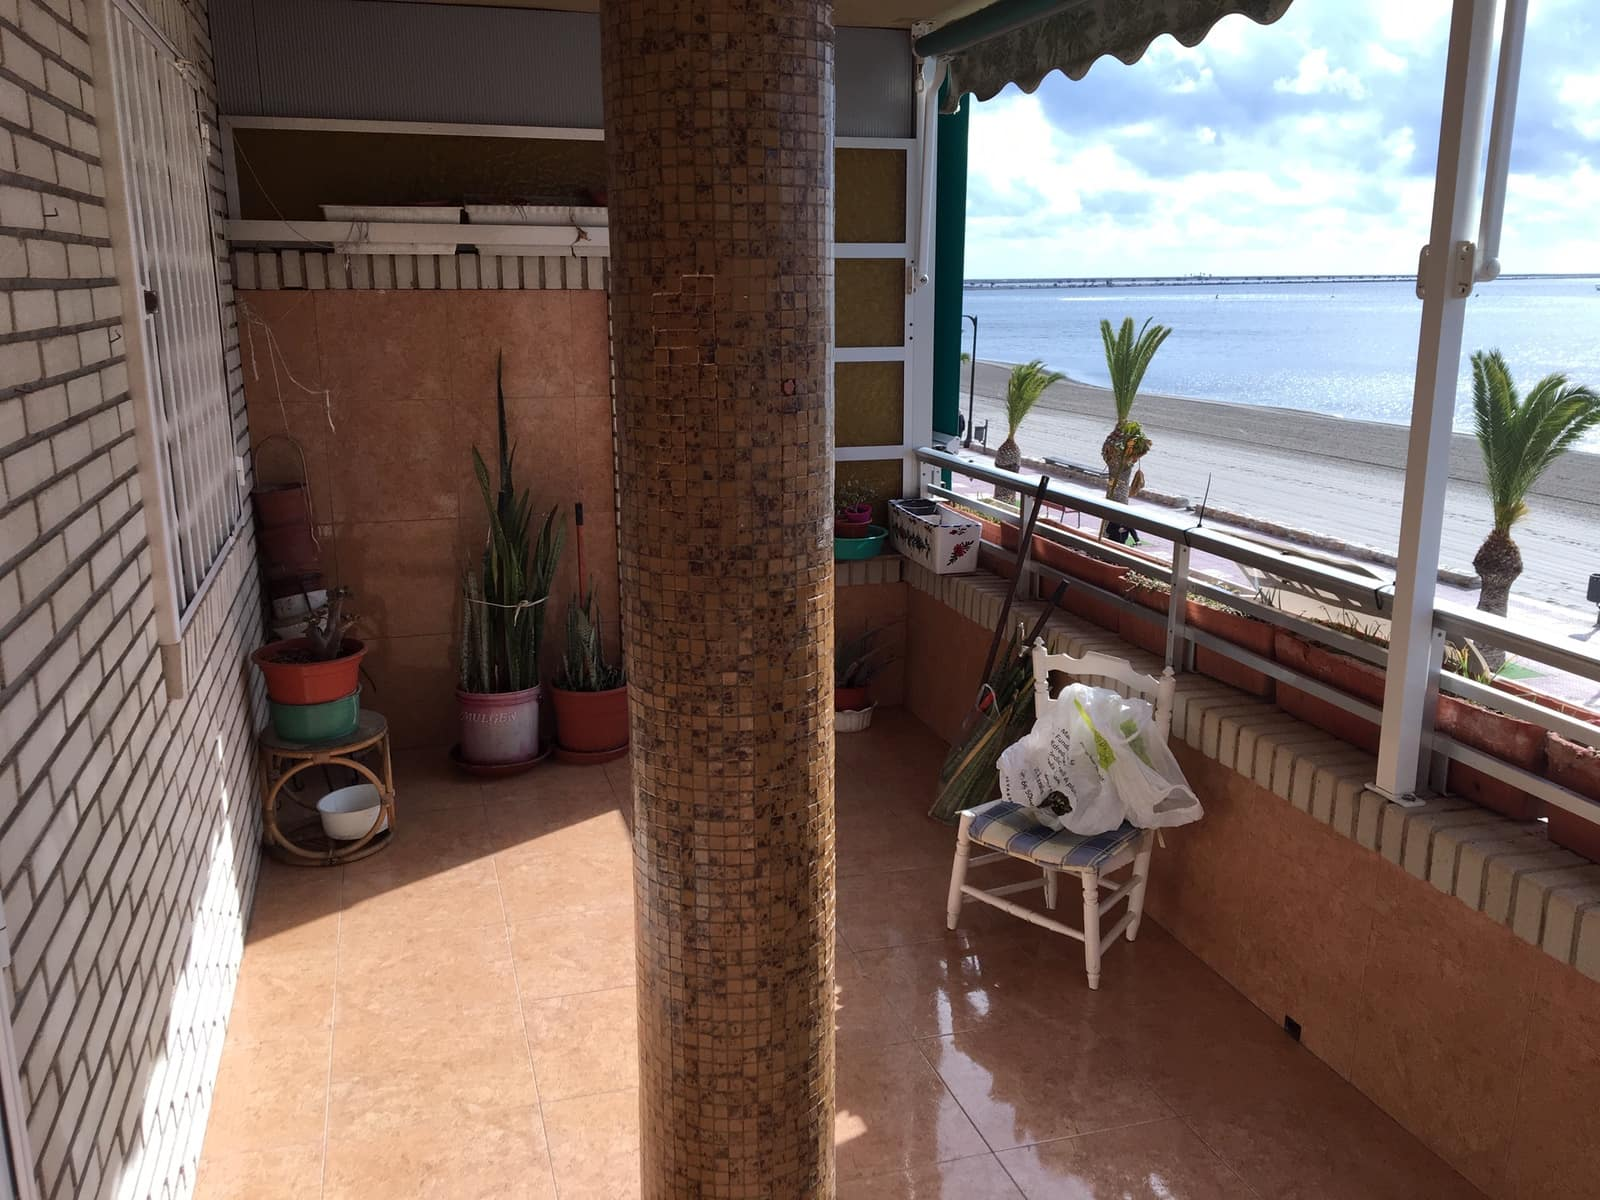 4 bedroom Apartment for sale in San Pedro del Pinatar with garage - € 190,000 (Ref: 4474999)